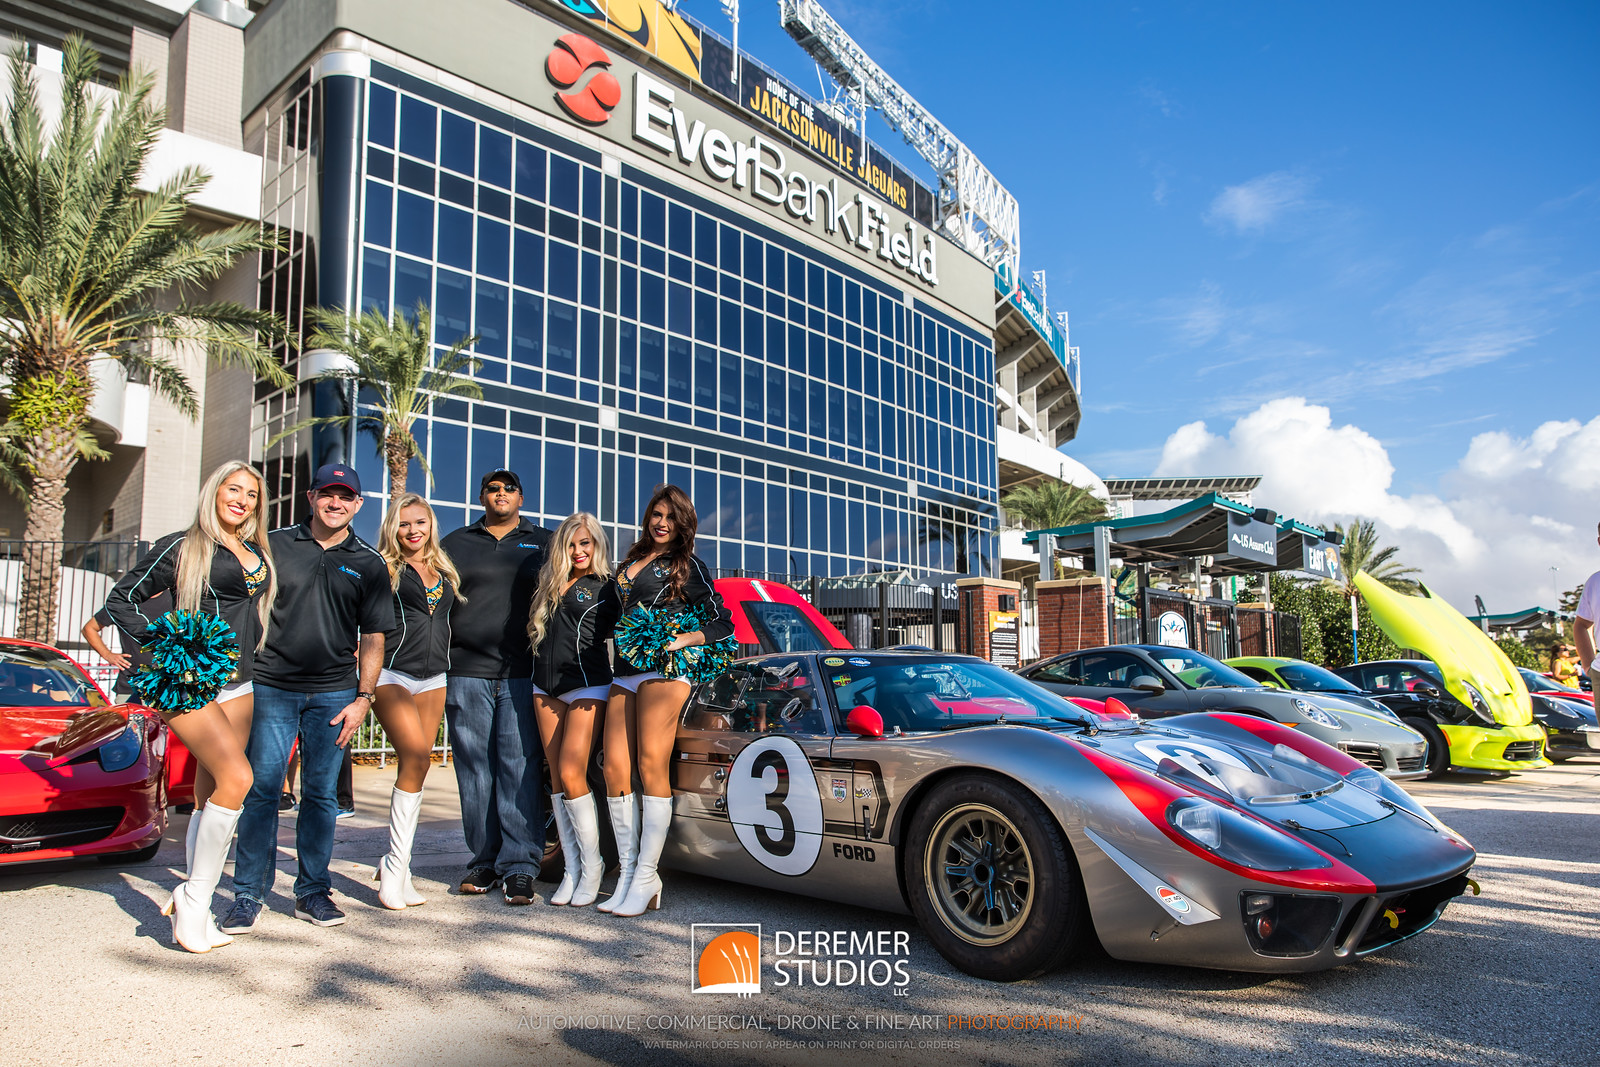 2017 10 Cars and Coffee - Everbank Field 074A - Deremer Studios LLC